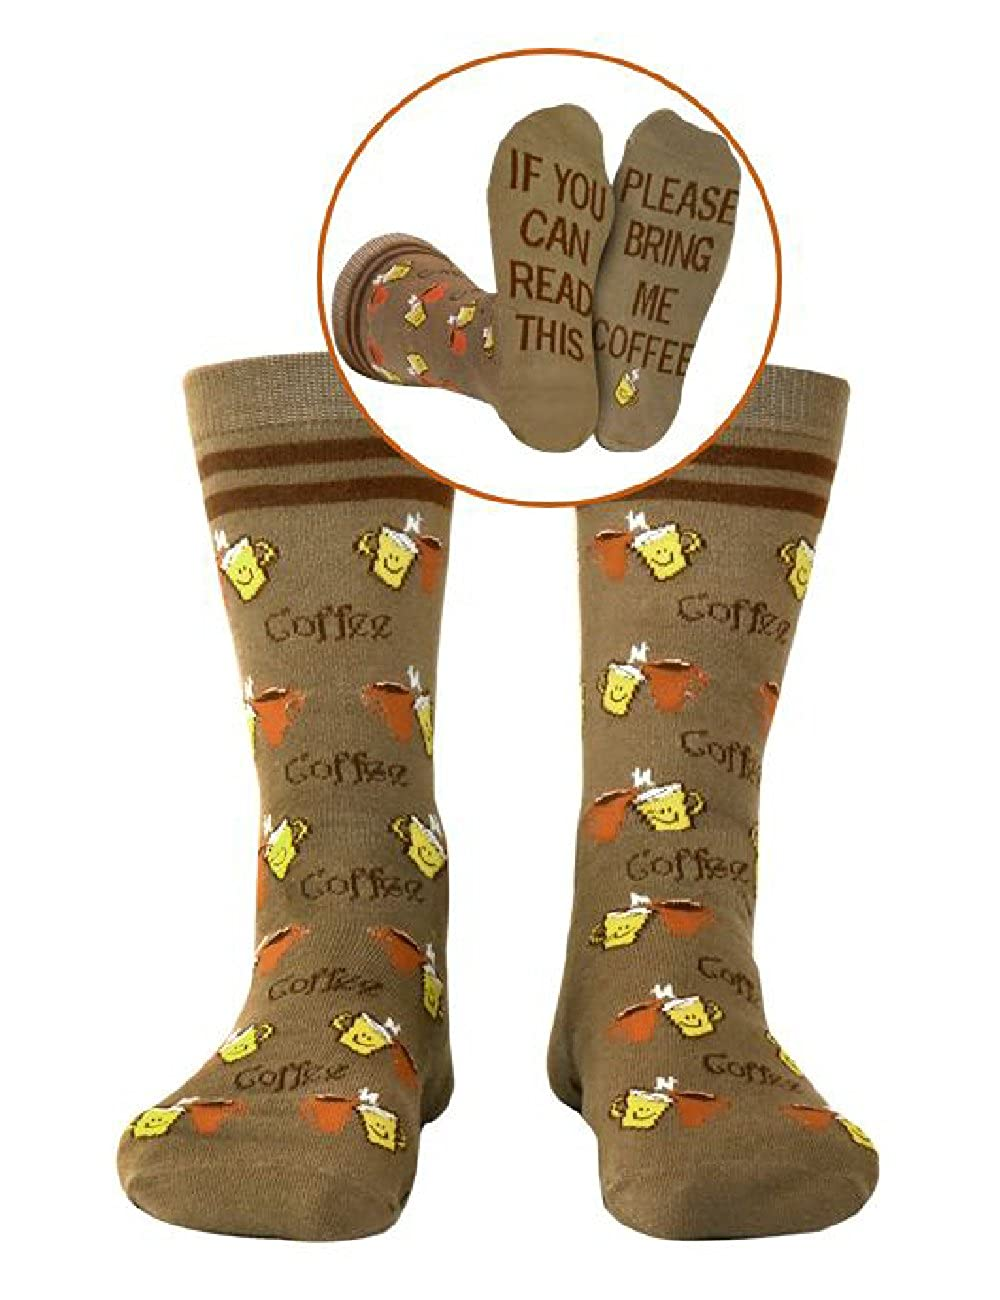 If You Can Read This Luxury Cotton Designs Bring Me Coffee Socks Men Women Great Gift